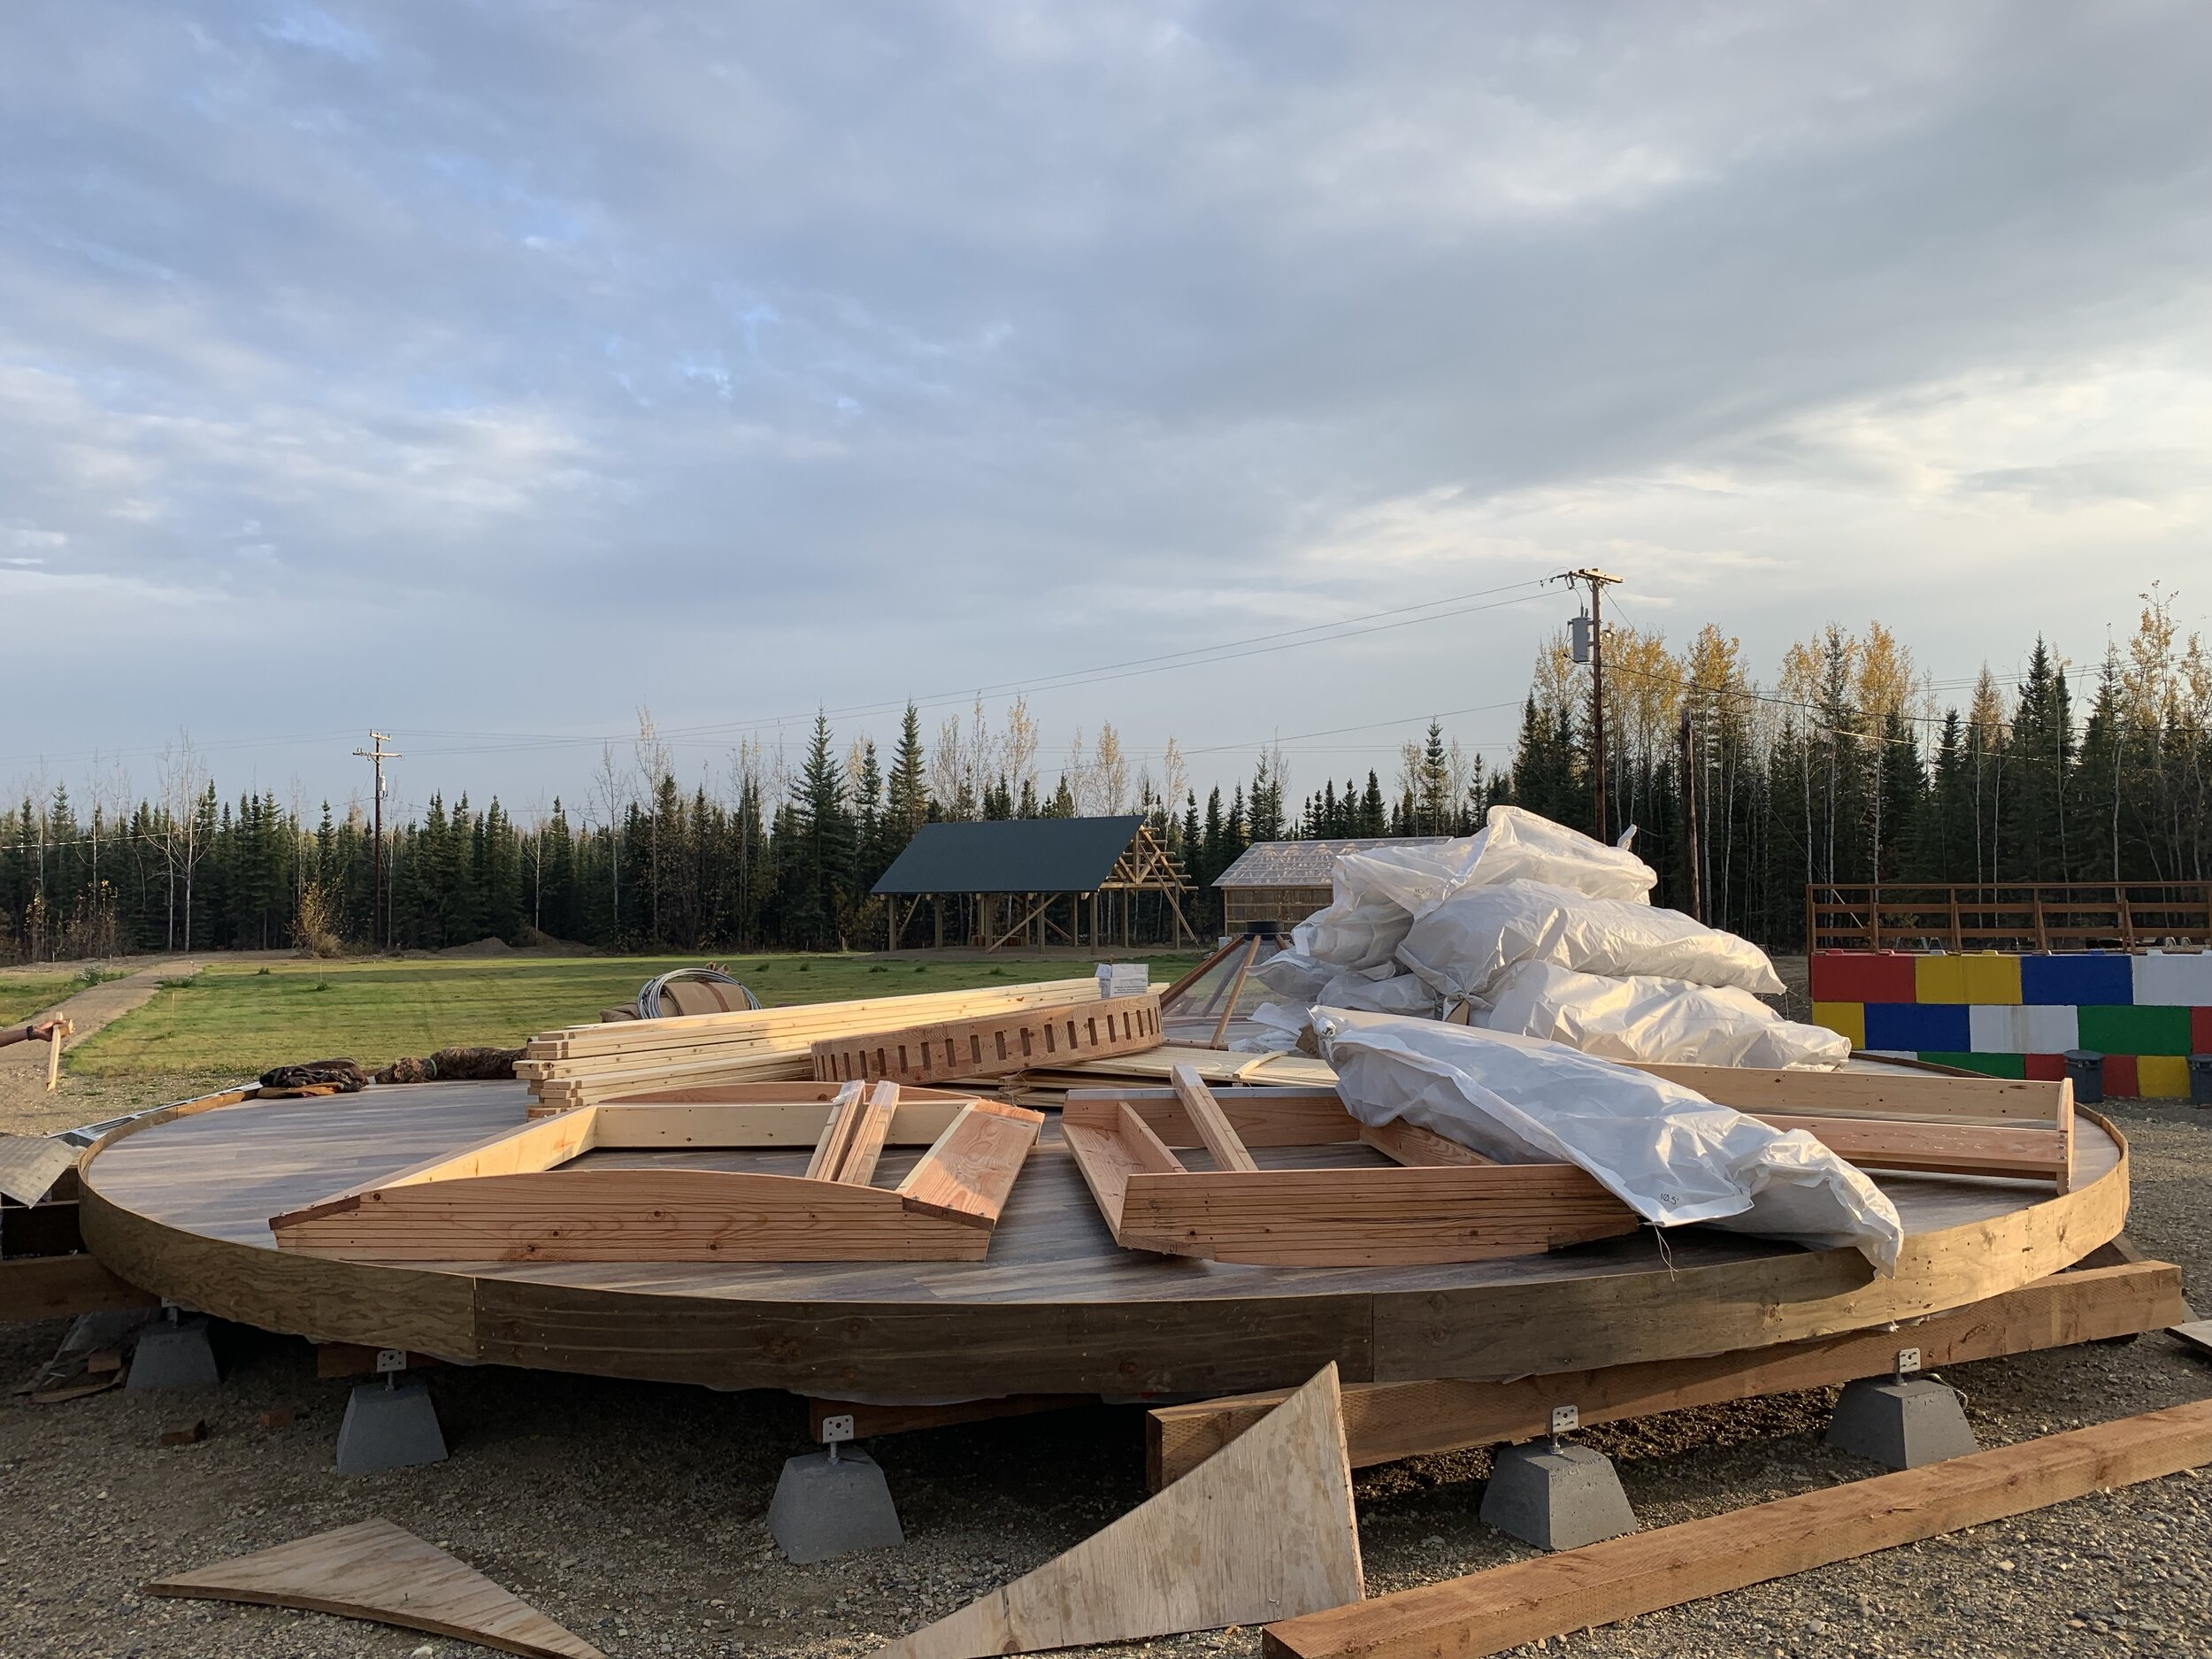 Yurt (future Visitor Center) under construction